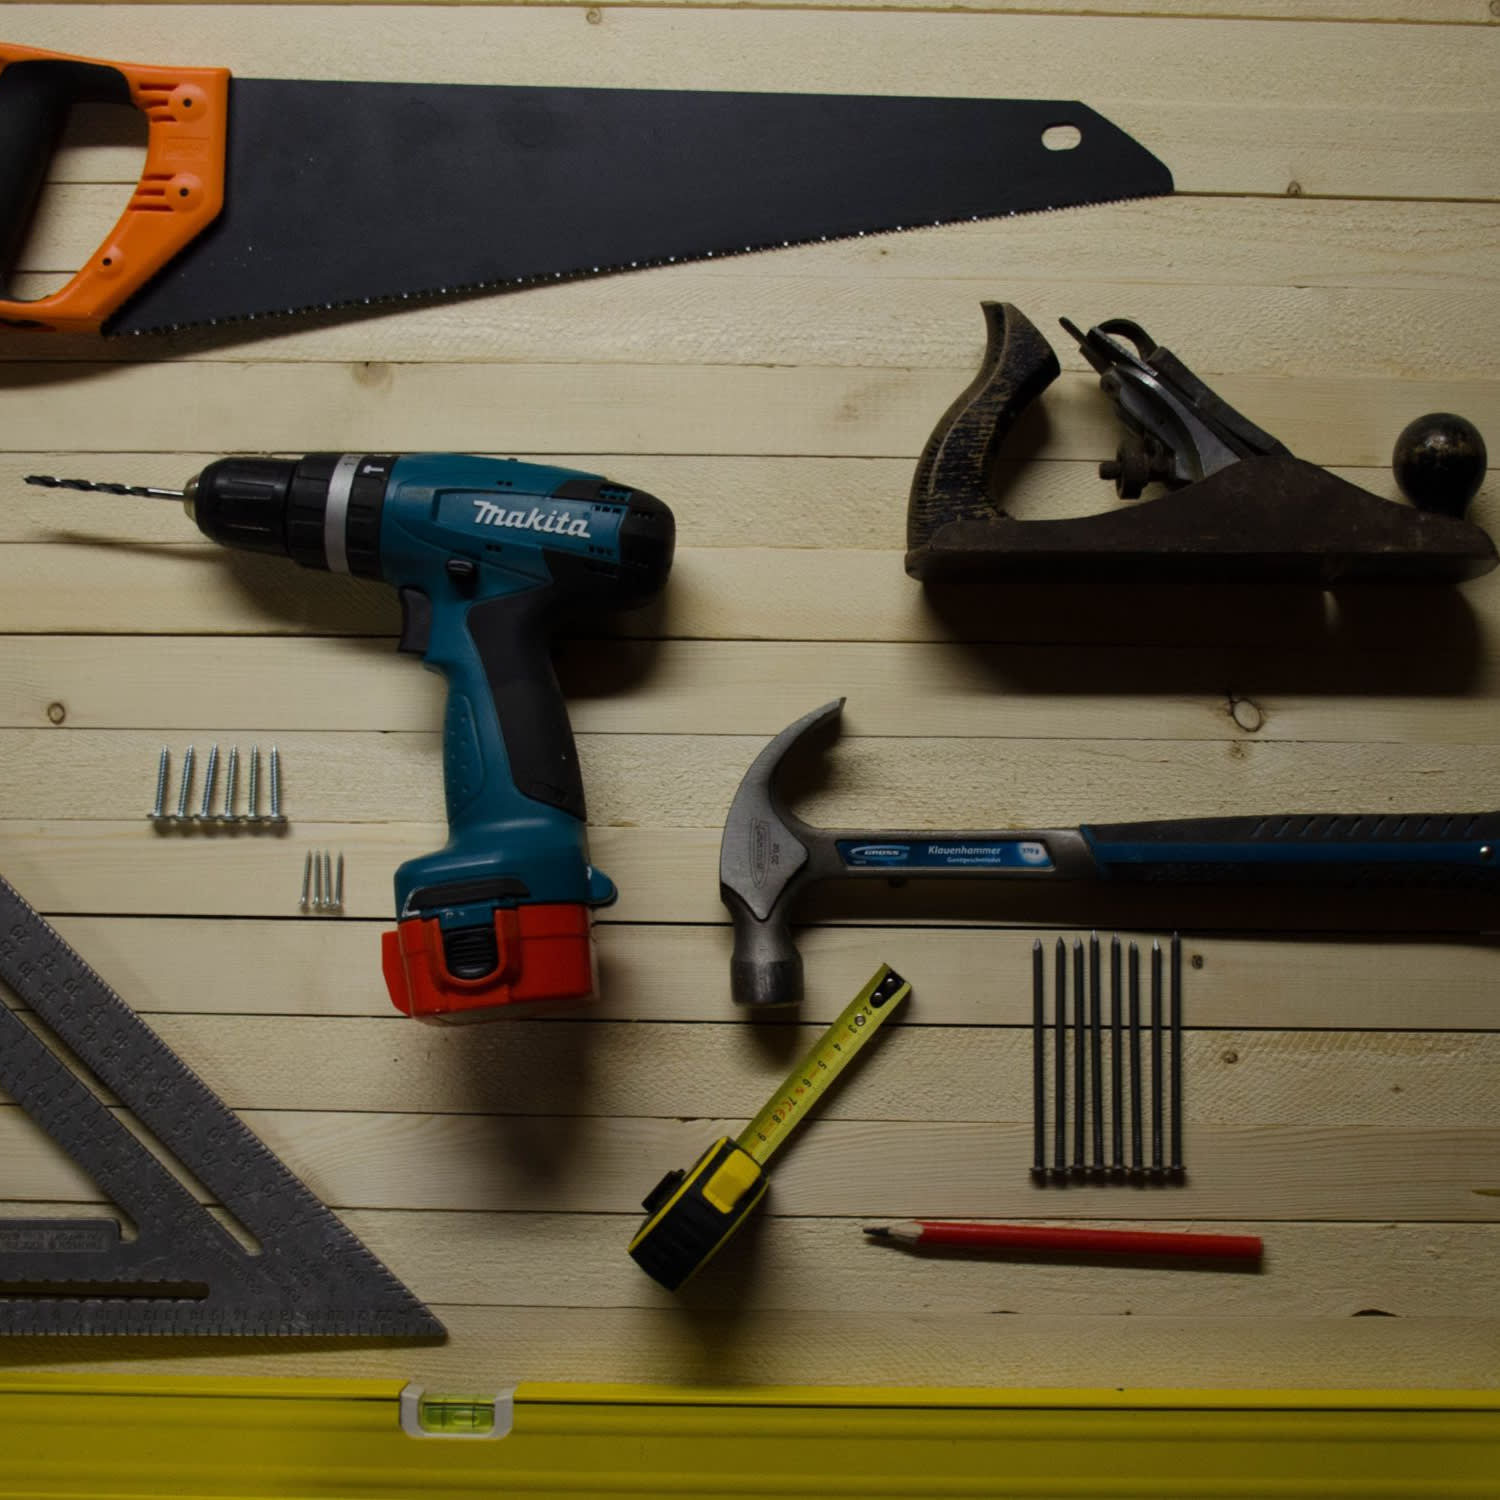 DIY Tools laid out on floorboards